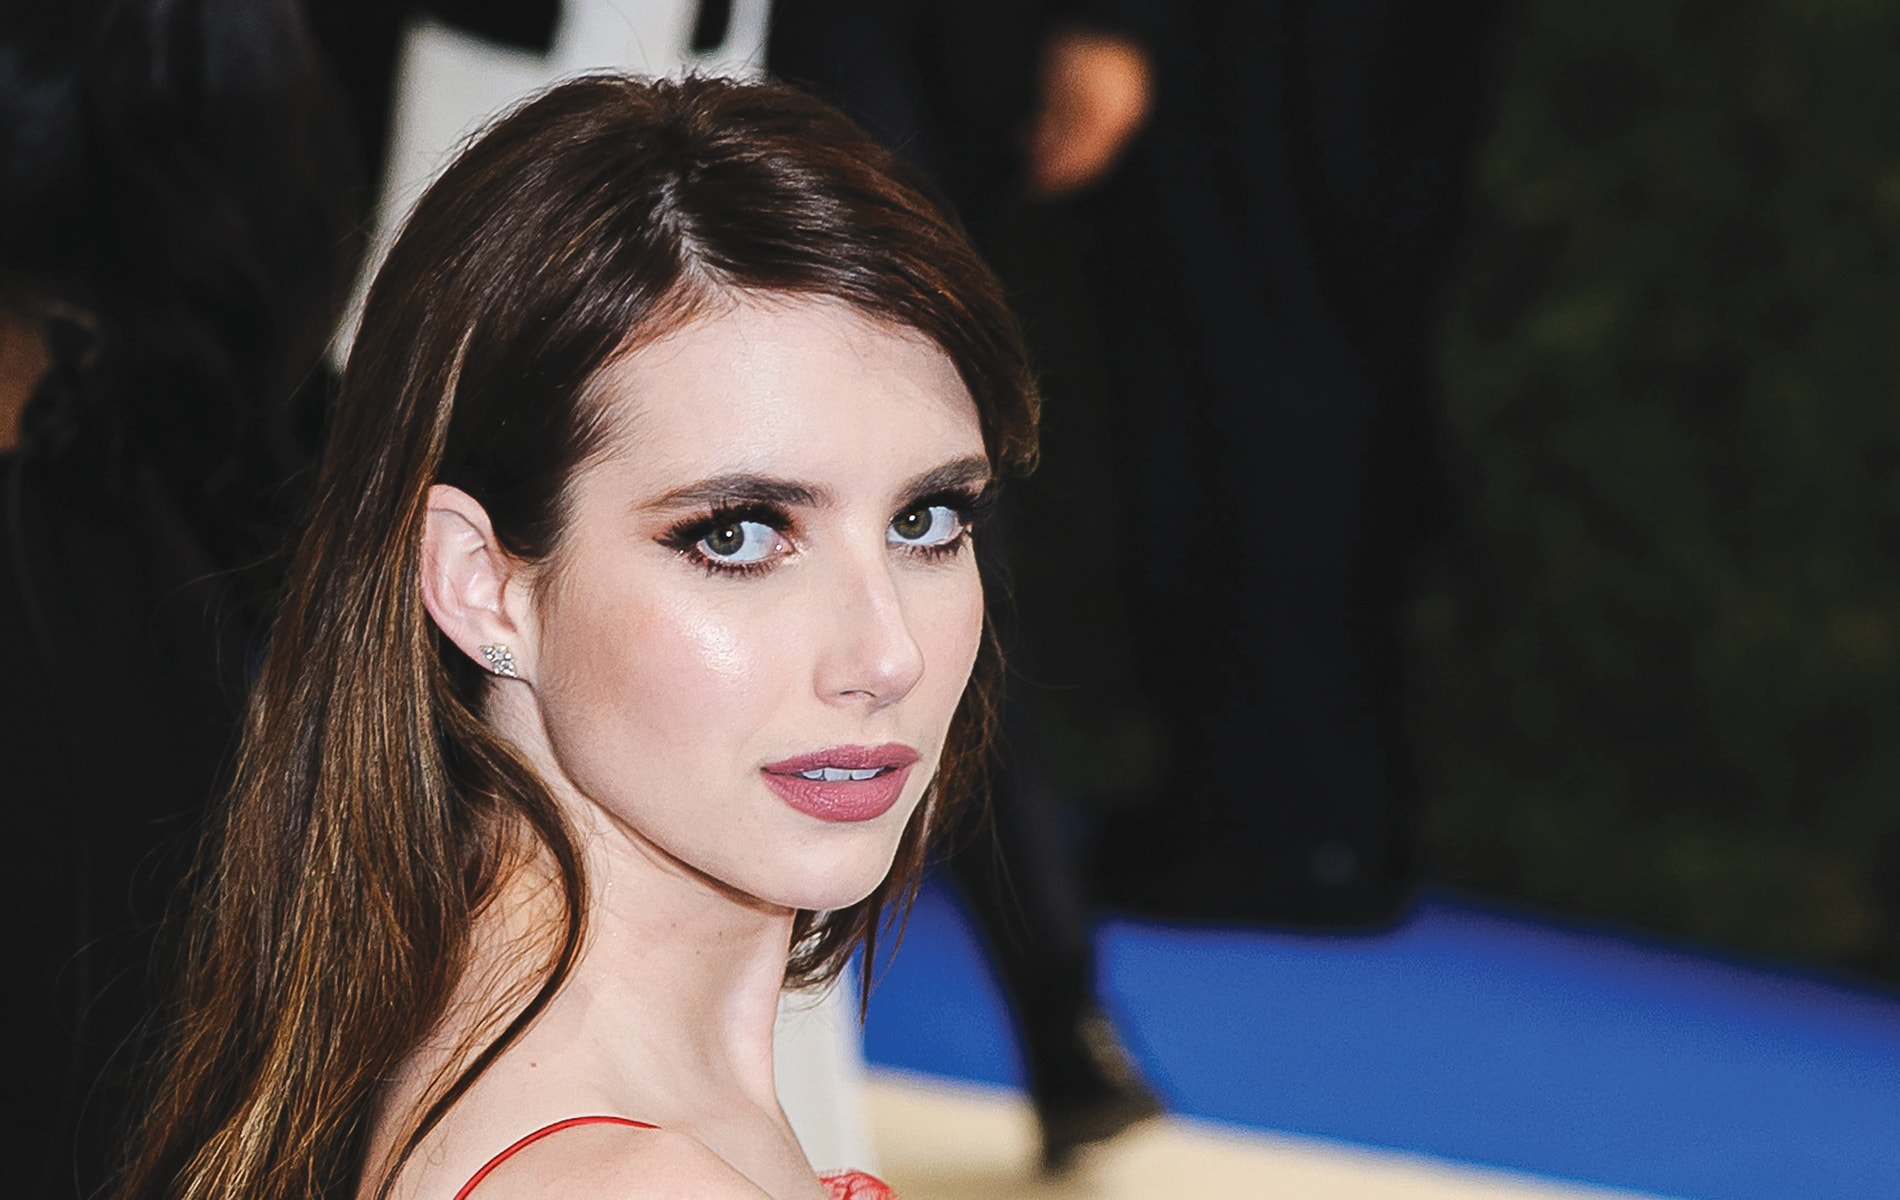 Emma Roberts attends the 2017 Metropolitan Museum of Art Costume Institute Gala sporting a Hollywood glam makeup look by Charlotte Tilbury. | Photo by Sky Cinema / Shutterstock